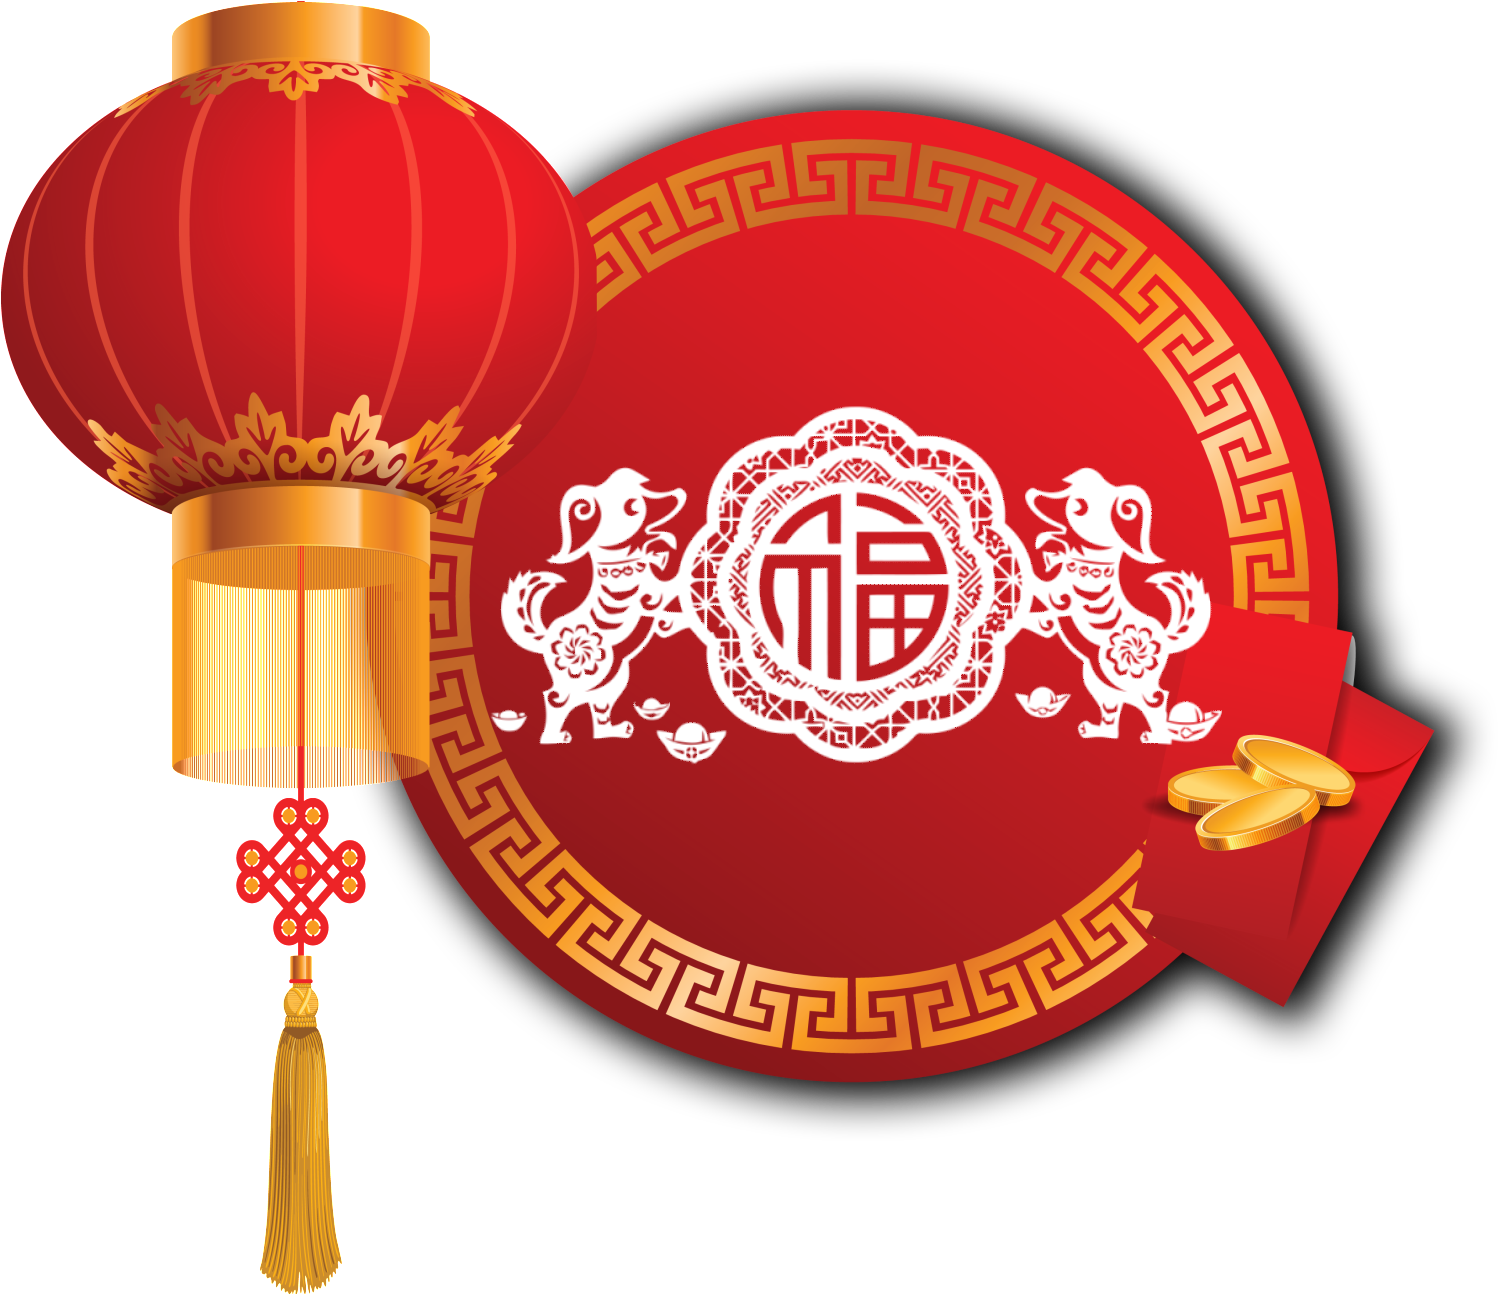 Download Yr Of The Dog Logo Chinese Lantern Transparent Background Full Size Png Image Pngkit